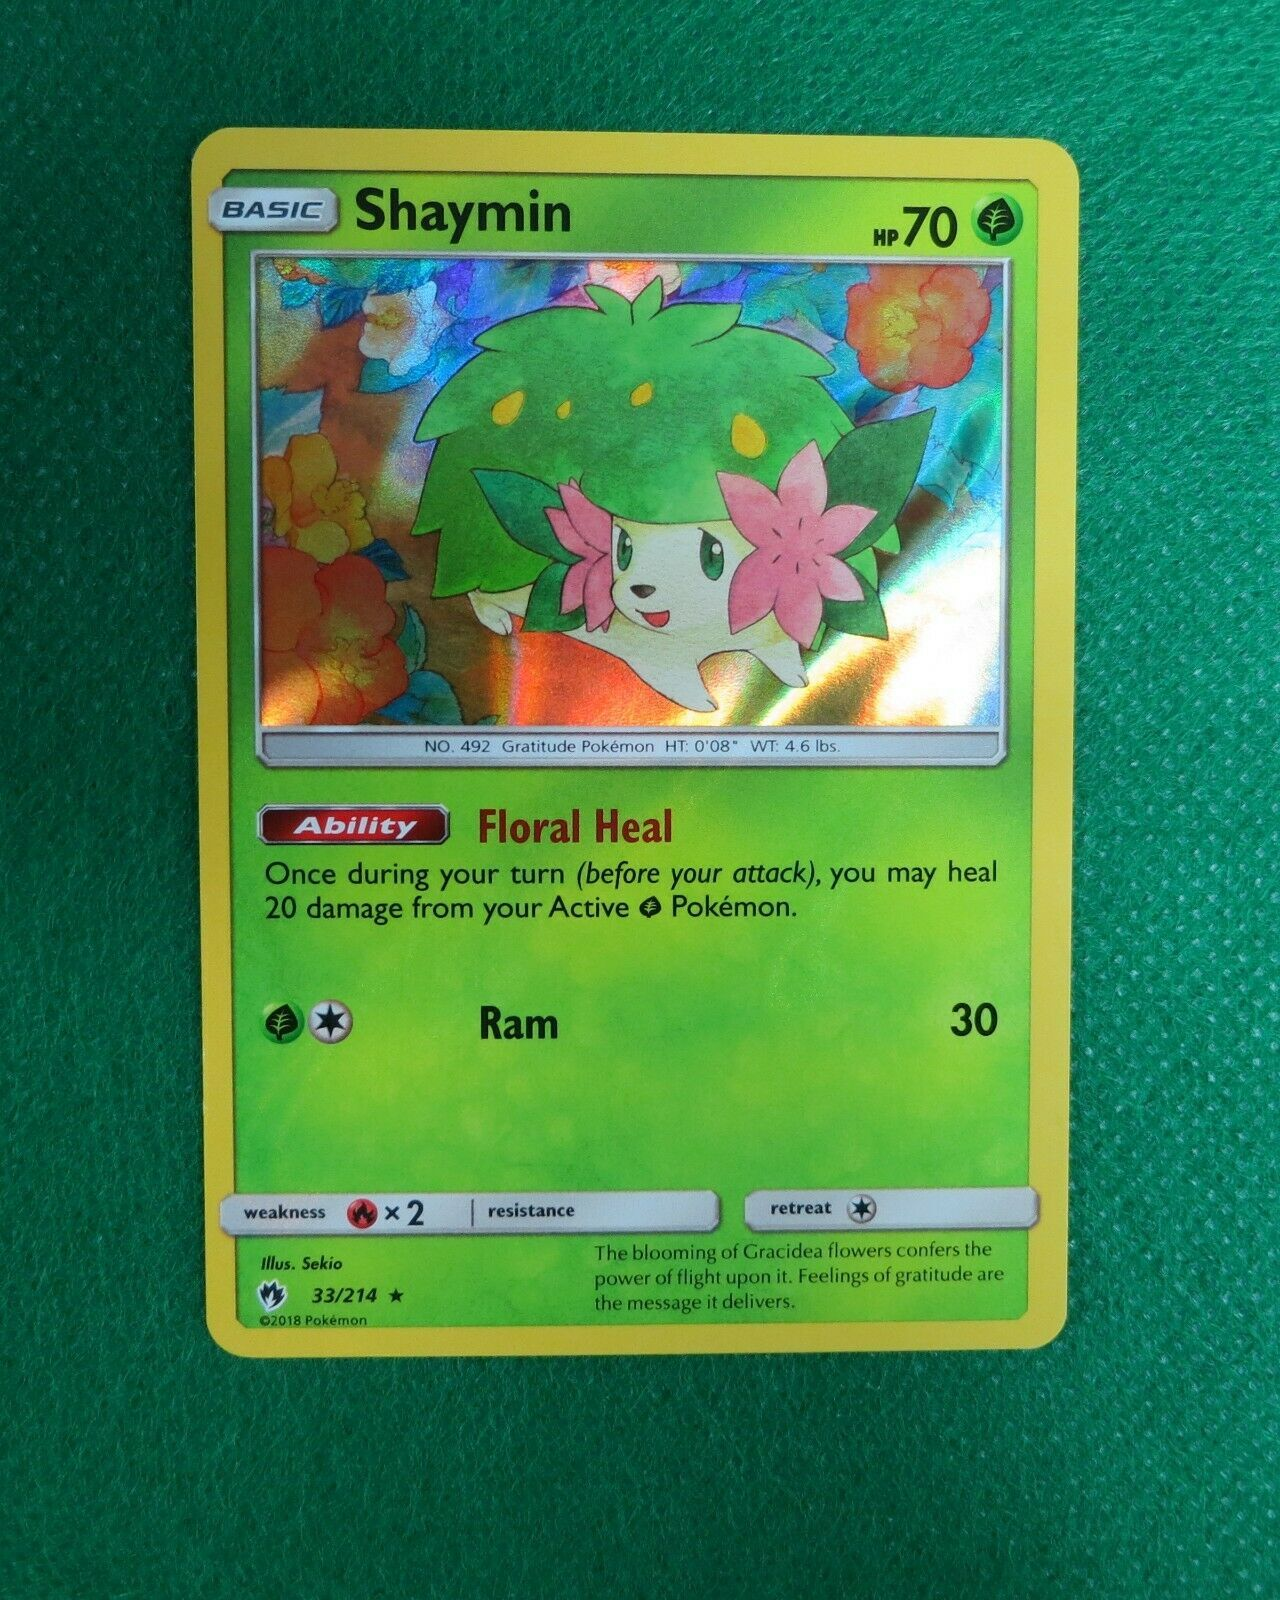 33//214 Pokemon Shaymin SM Lost Thunder Holo